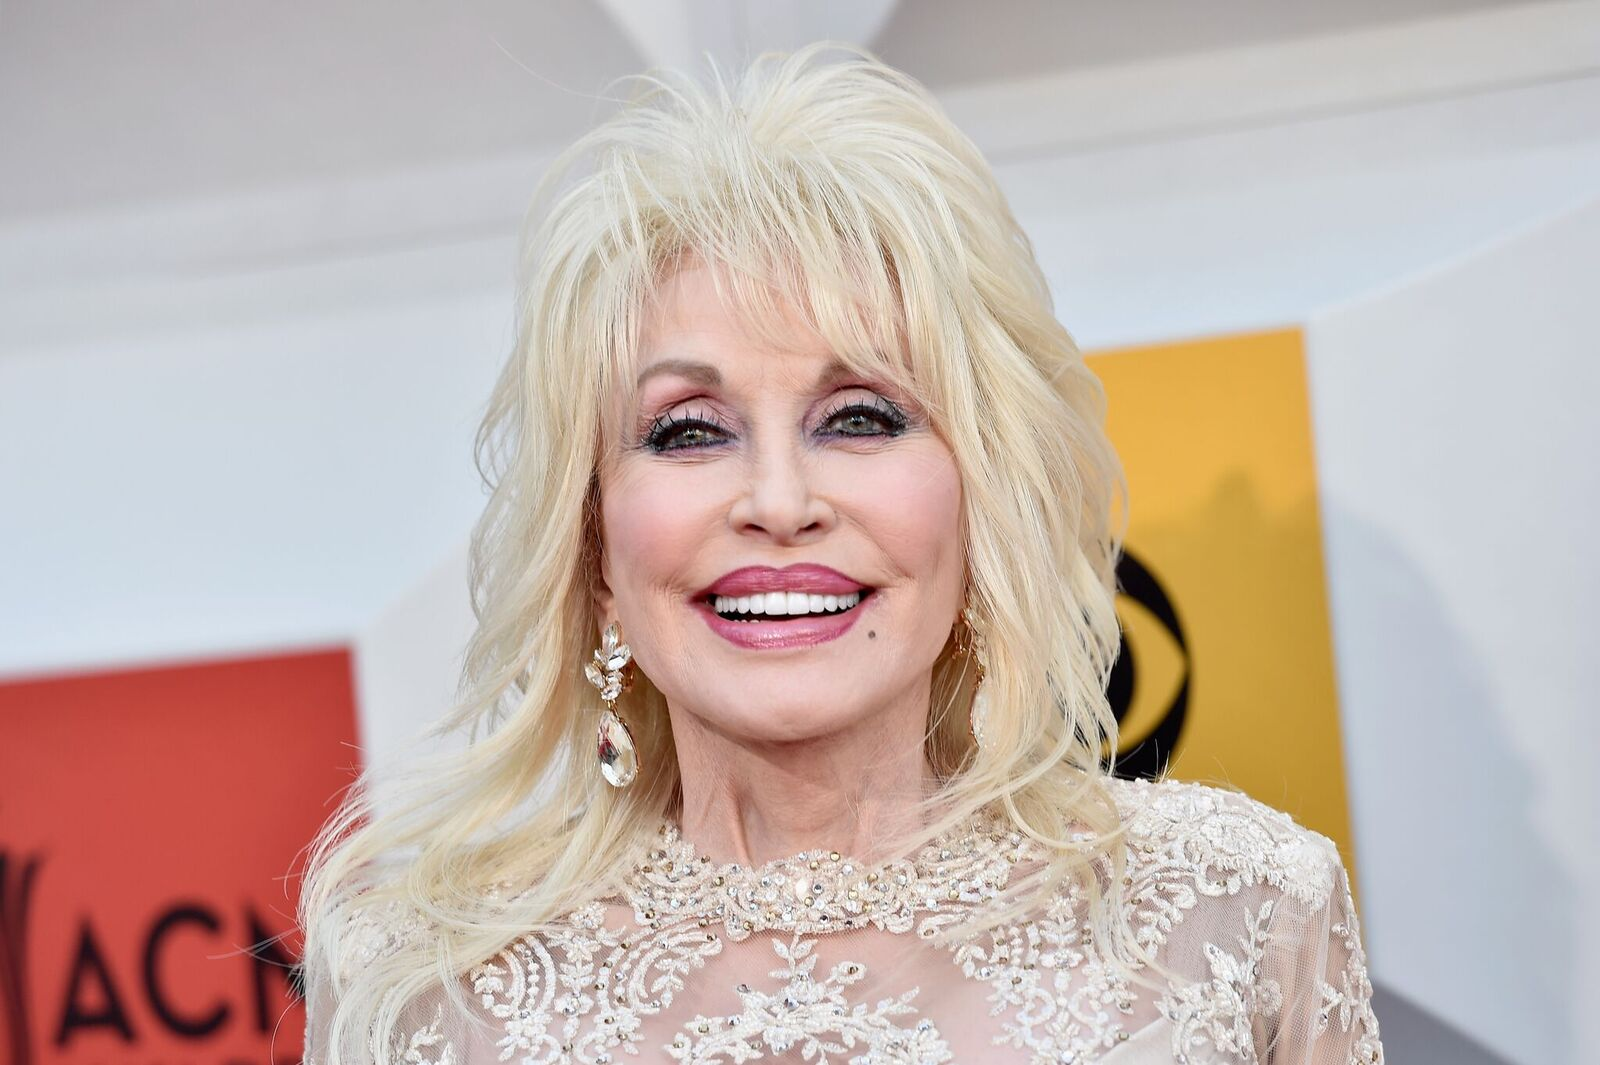 Singer-songwriter Dolly Parton attends the 51st Academy of Country Music Awards at MGM Grand Garden Arena on April 3, 2016 in Las Vegas, Nevada | Photo: Getty Images